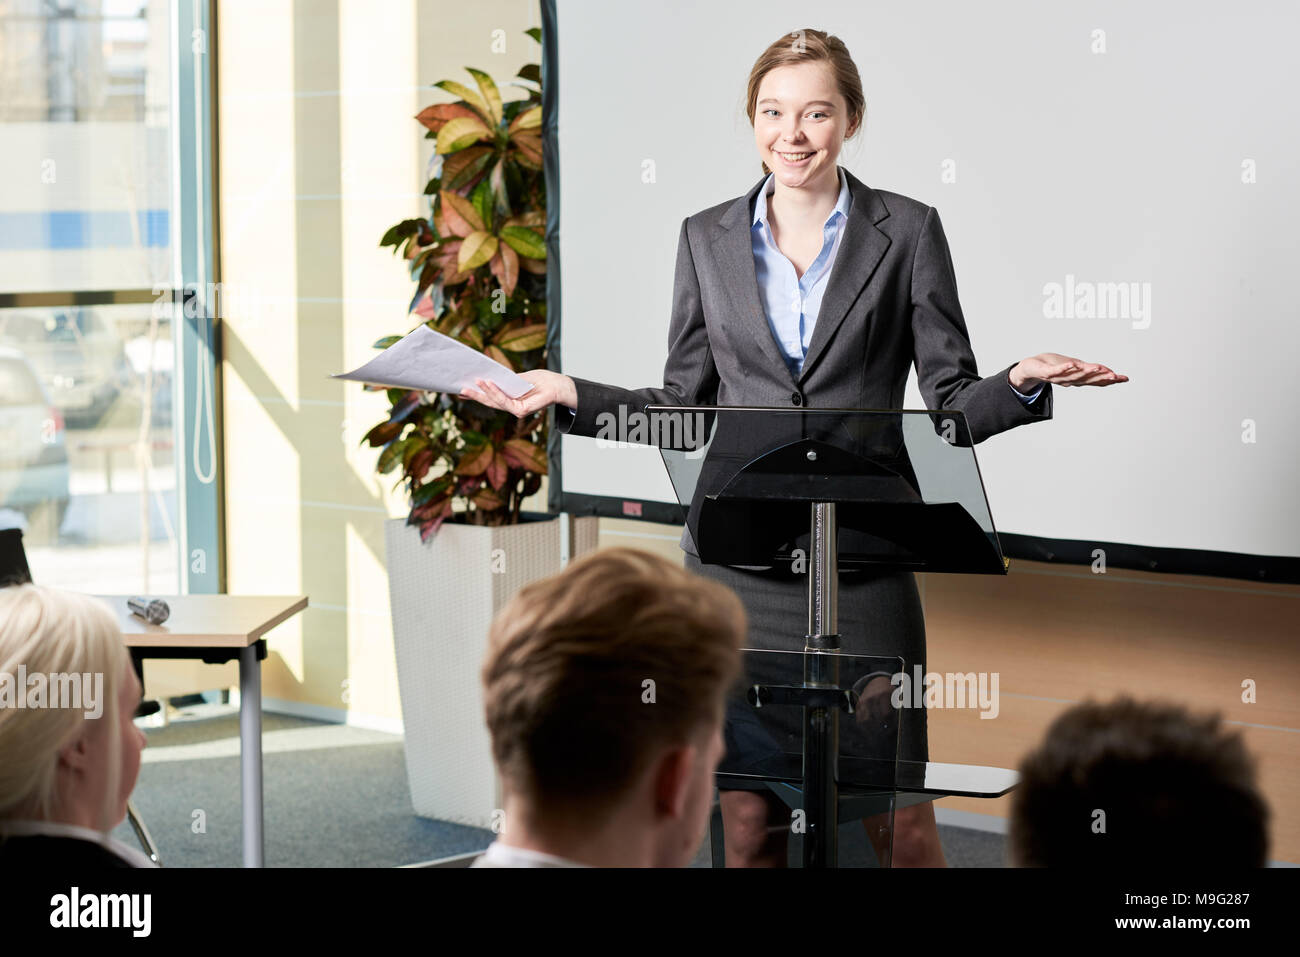 Young Businesswoman Giving Speech - Stock Image